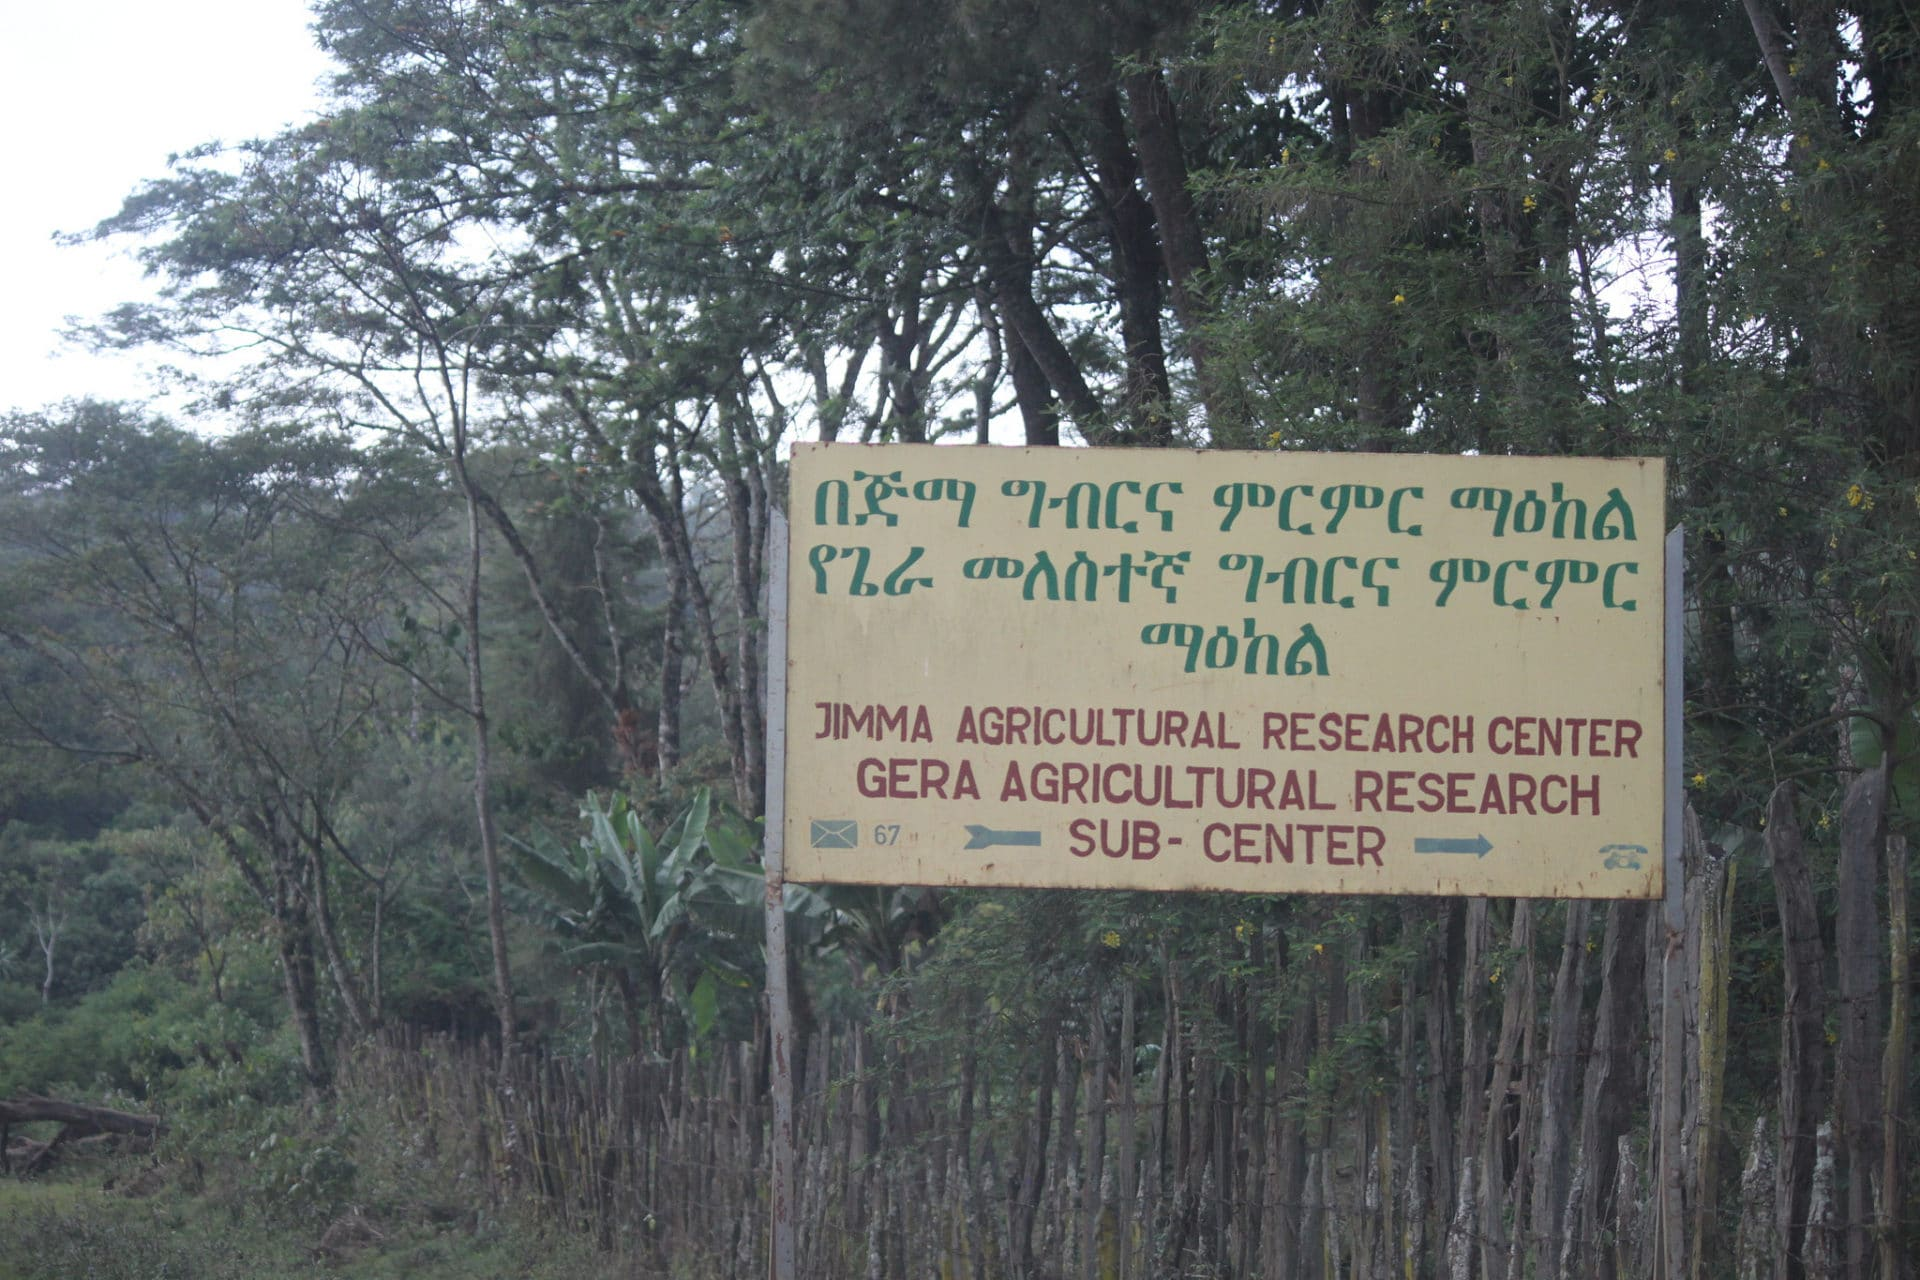 Jimma Agricultural Research Center's sub-location research plot in Gera